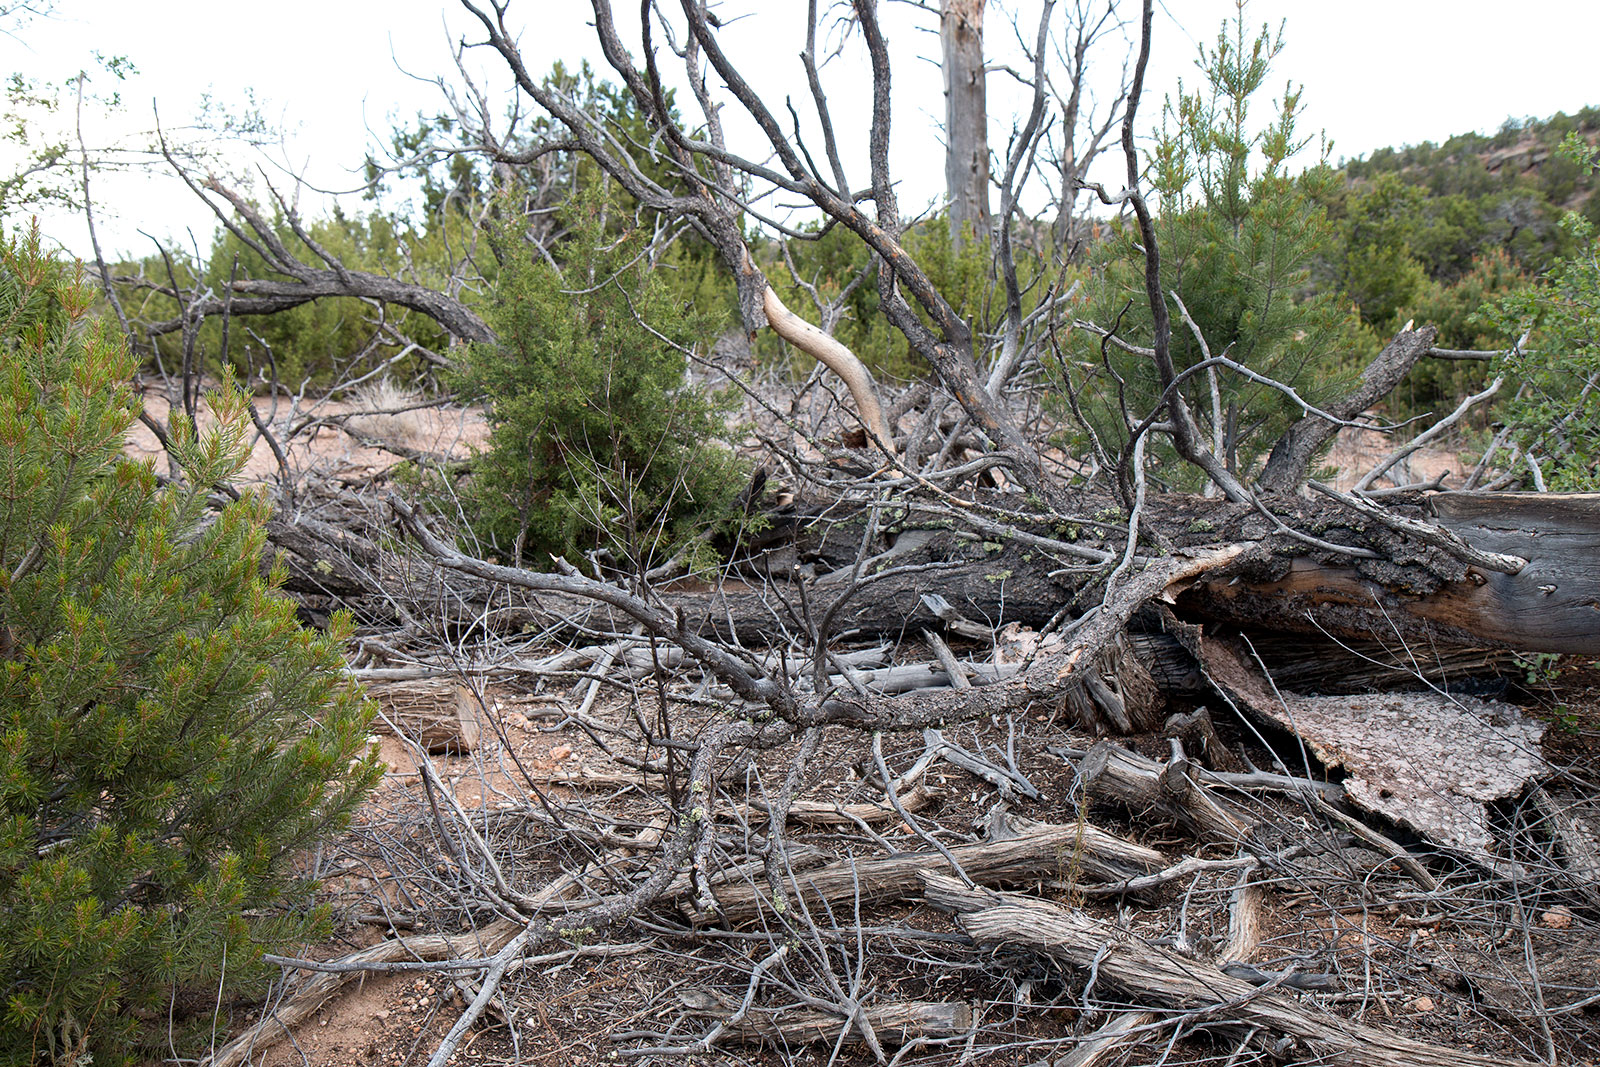 Juniper trees now dominate the landscape after 40 to 80 percent of piñon trees in these ecosystems perished. Los Alamos National Laboratory